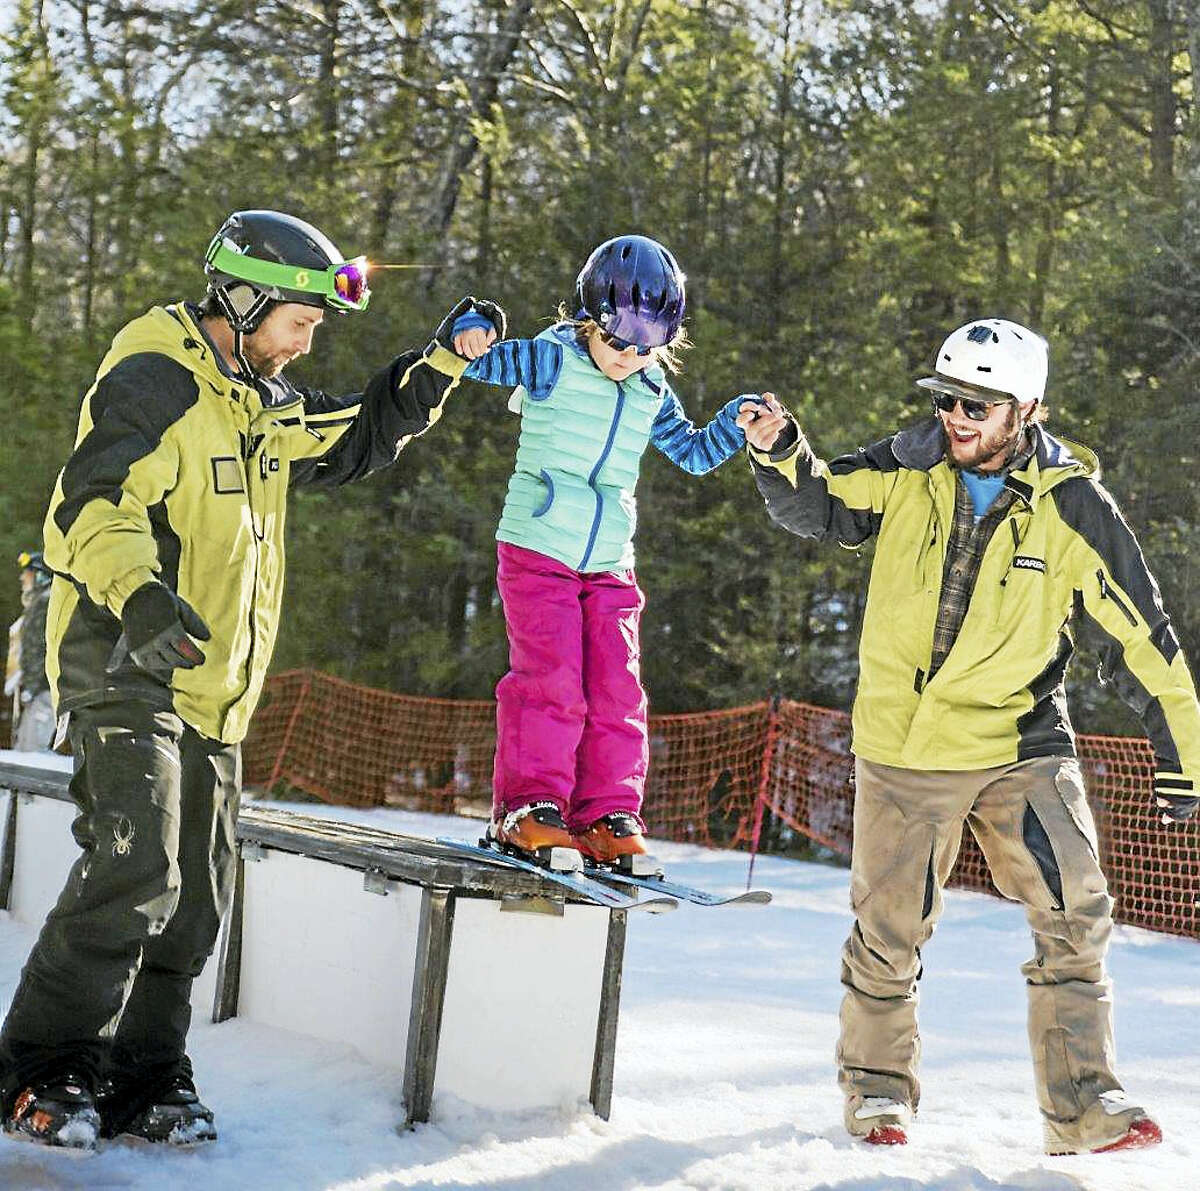 Ski Sundown/Taylor Kemp PhotographyA child participates in Ski Sundown's Girls Rock the Park event in 2015. Skiing event registration is open this weekend in Salisbury.